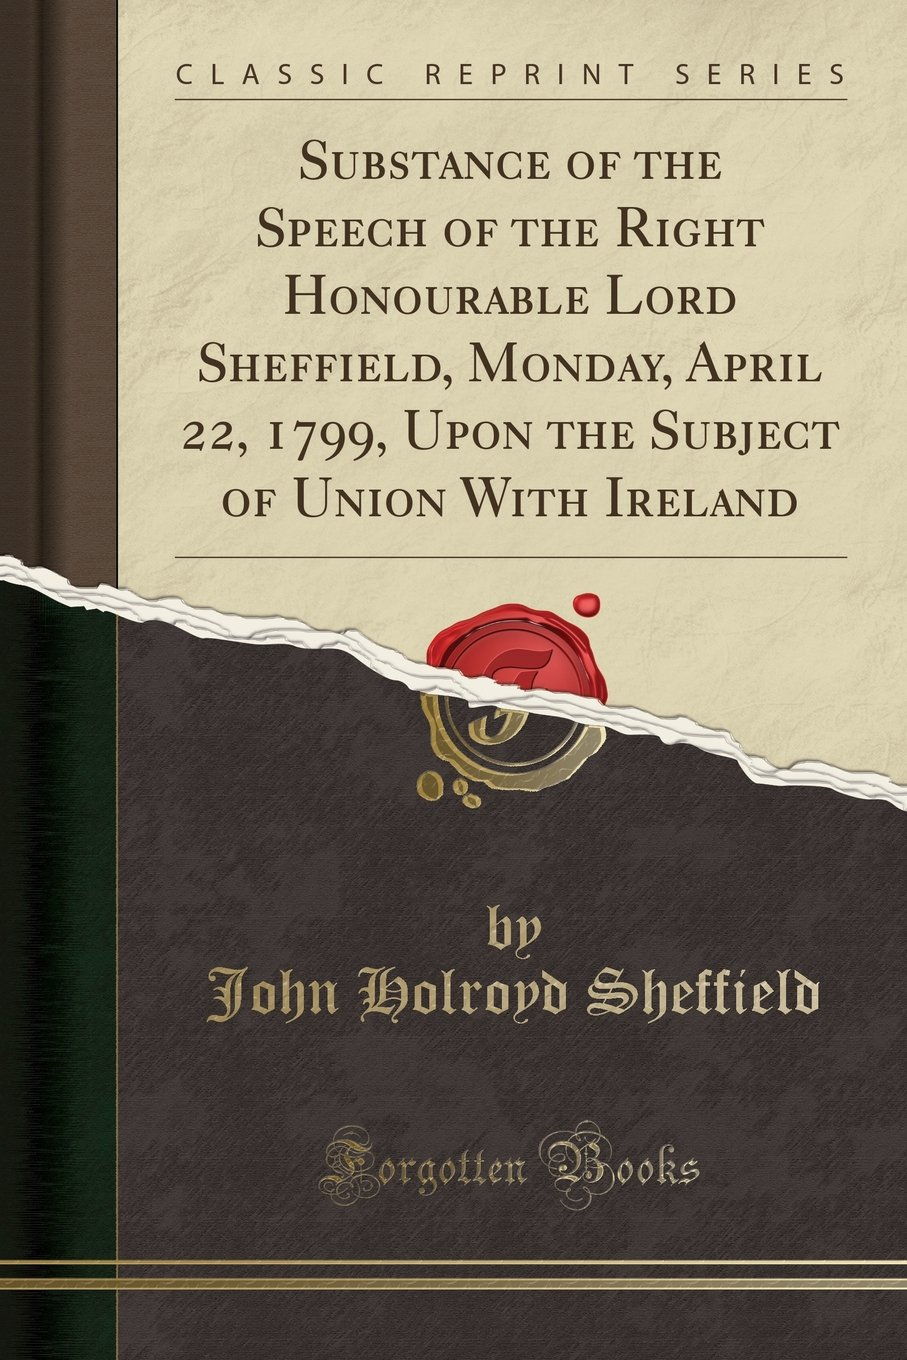 Substance of the Speech of the Right Honourable Lord Sheffield, Monday, April 22, 1799, Upon the Subject of Union With Ireland (Classic Reprint) pdf